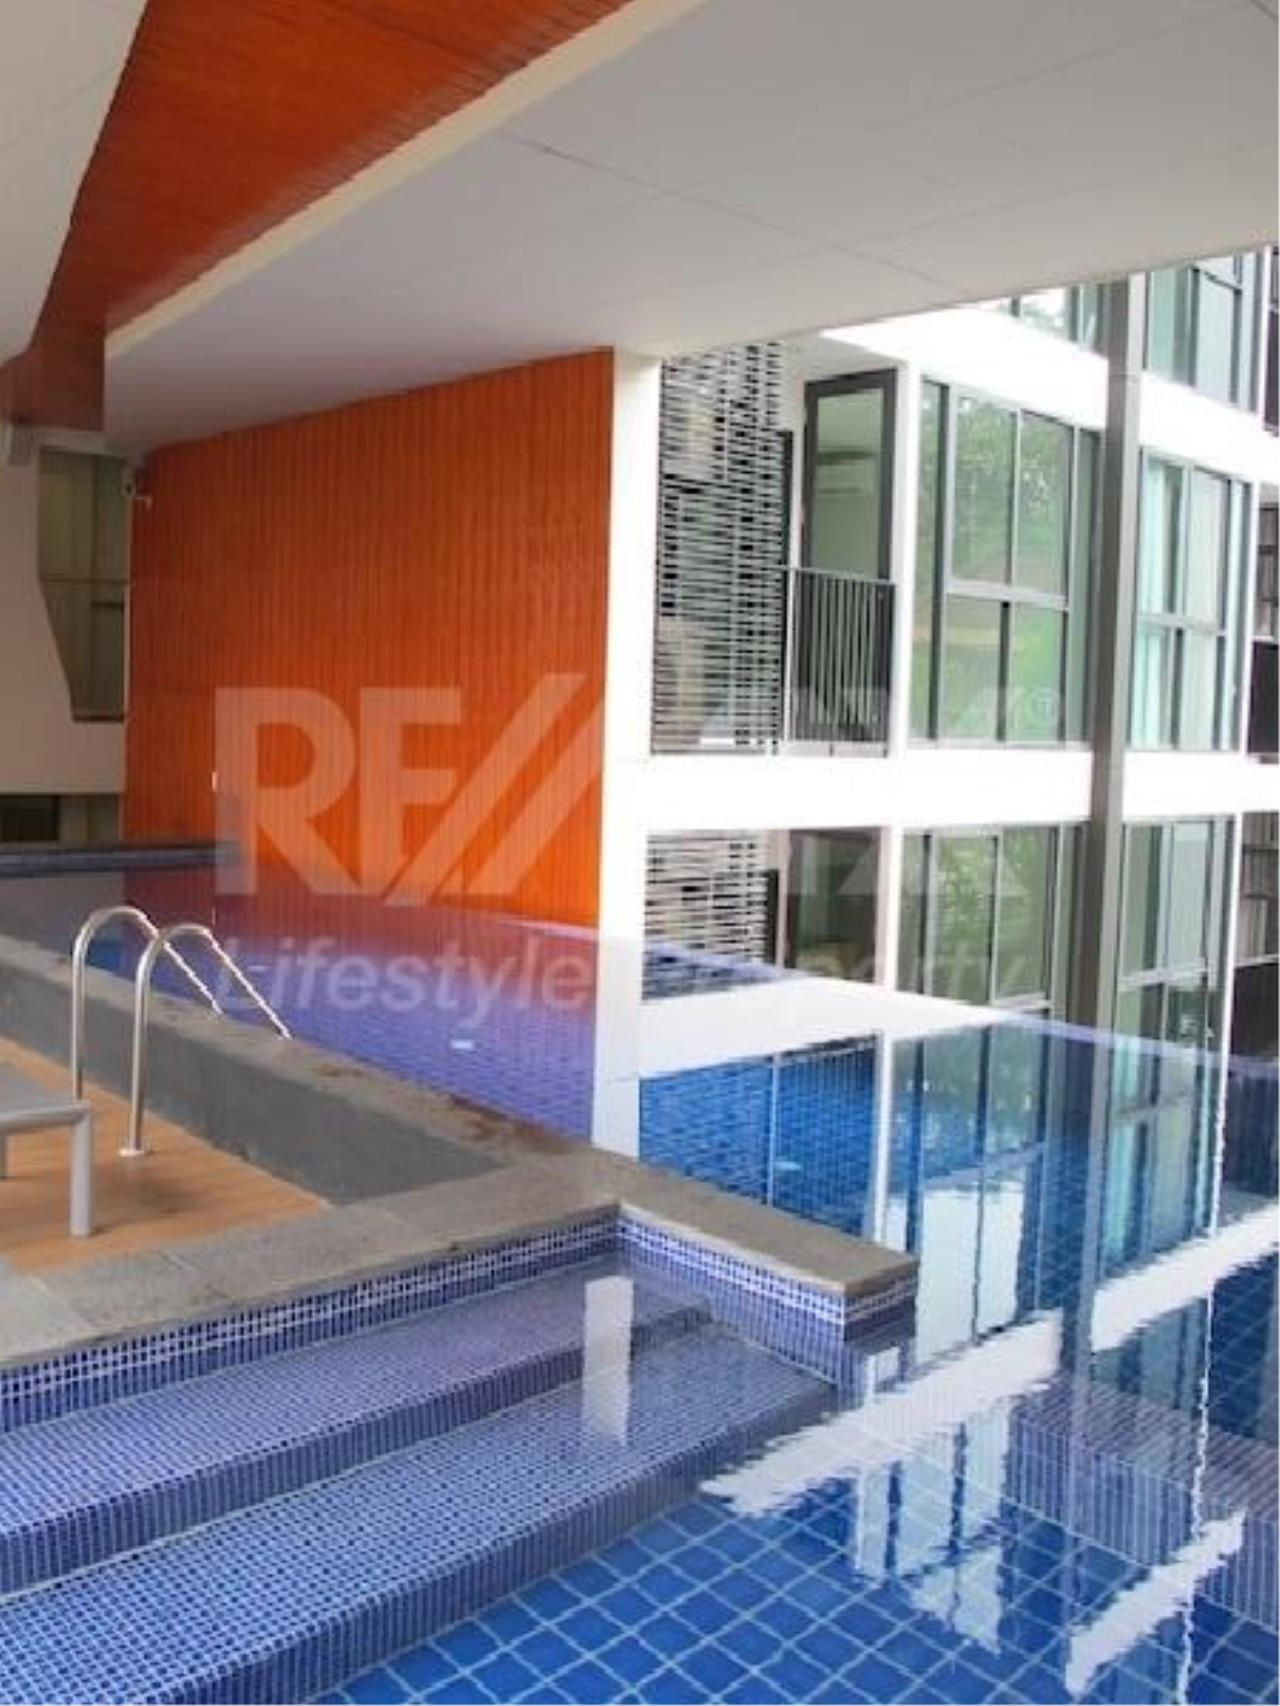 RE/MAX LifeStyle Property Agency's D 25 Thonglor 2